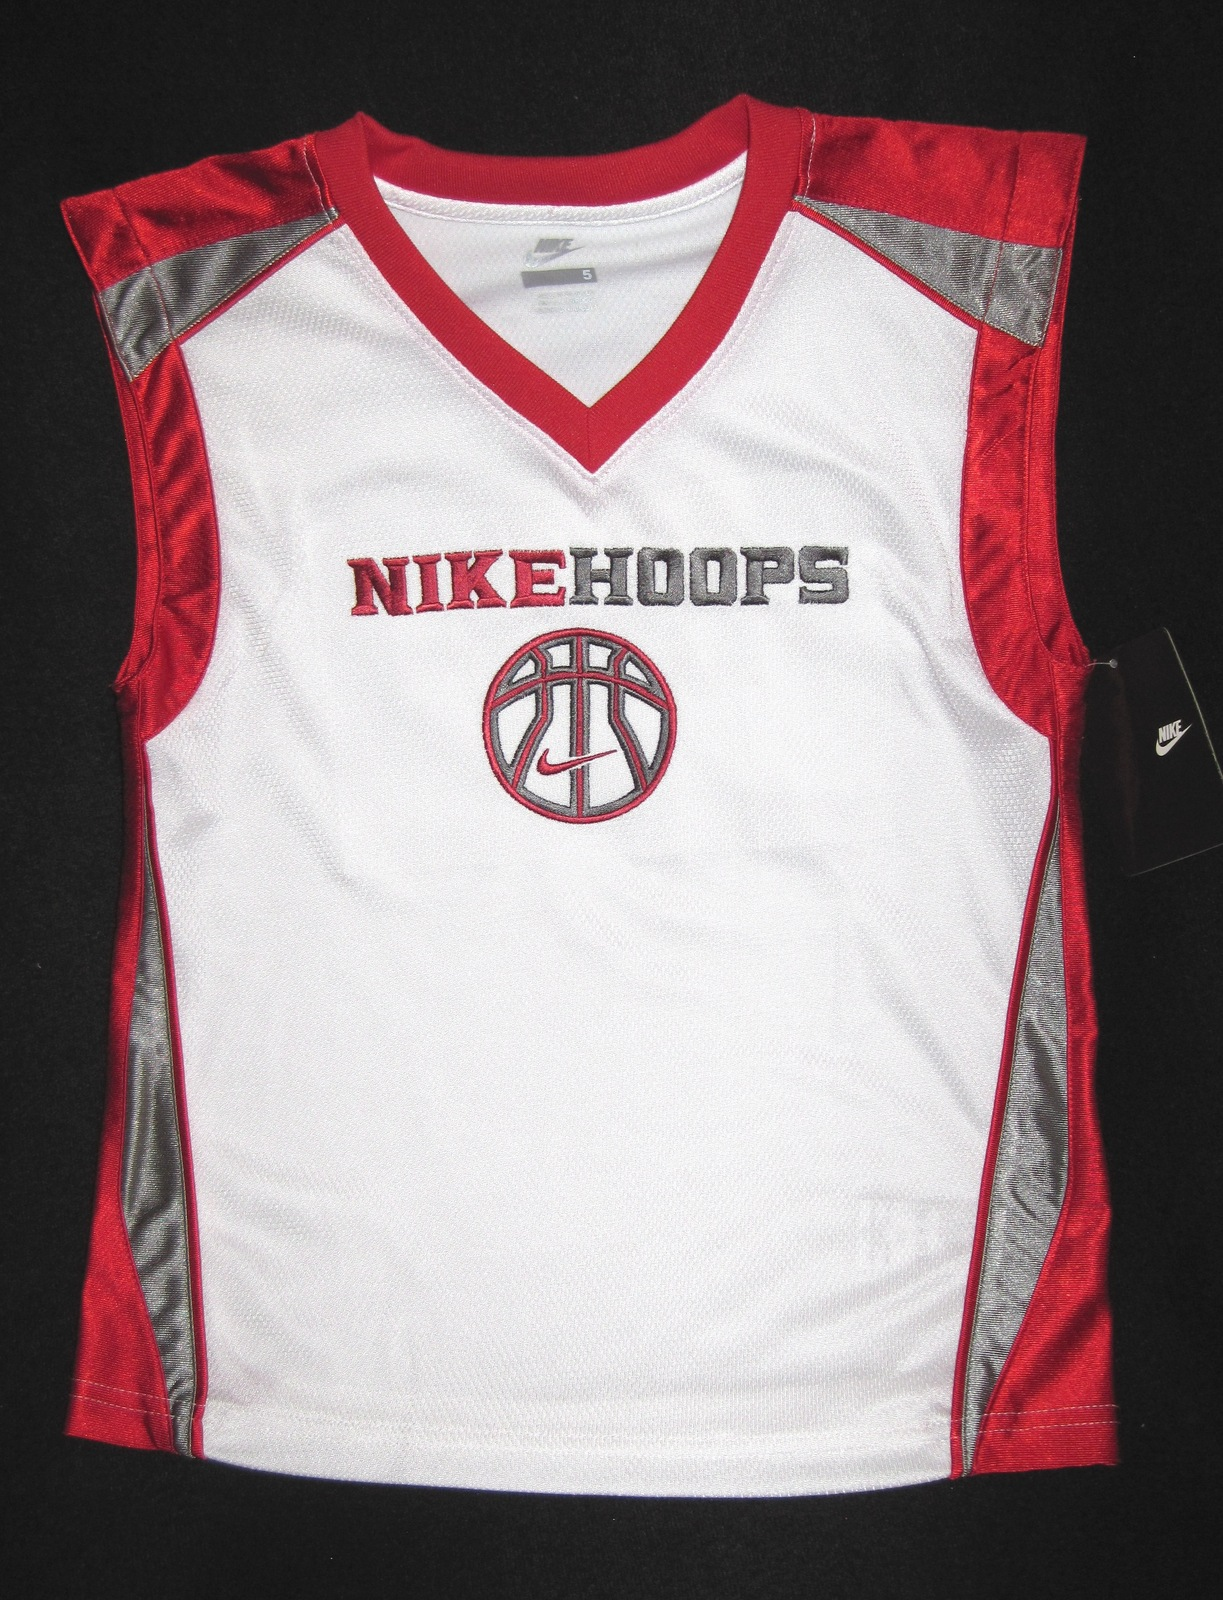 BOYS 6 - Nike Hoops - White-Red-Gray BASKETBALL SPORTS JERSEY image 3